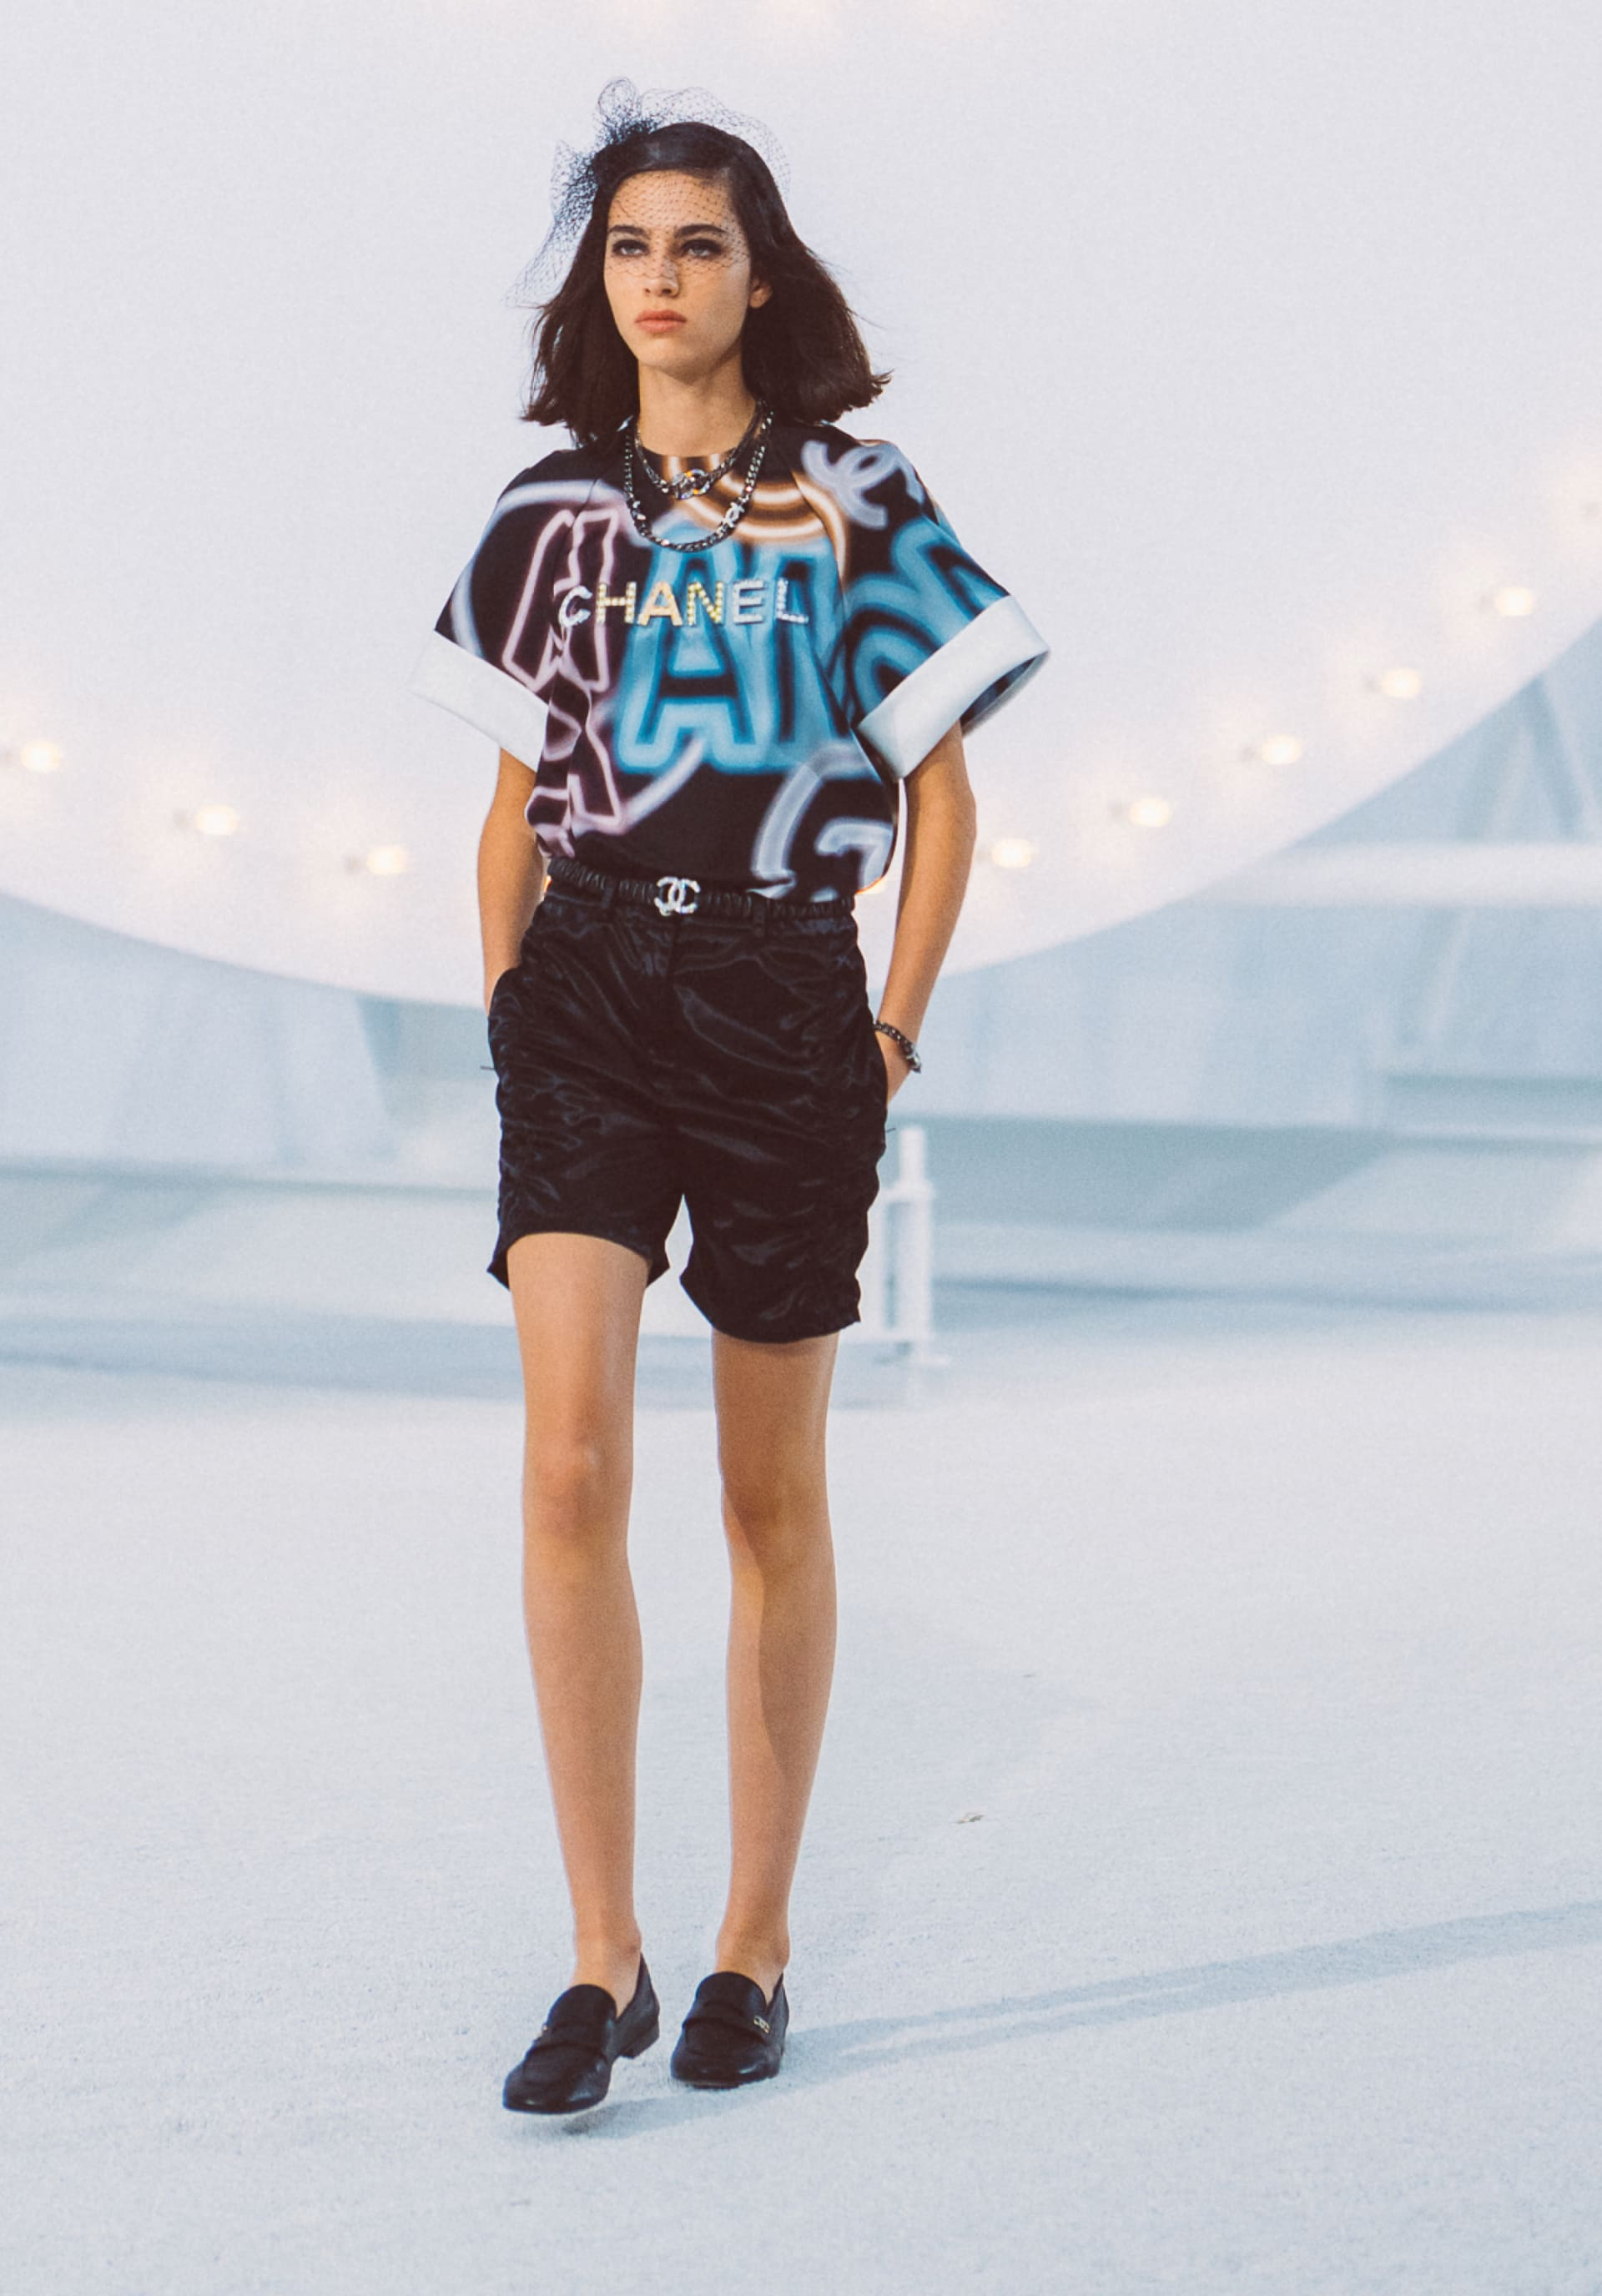 View 1 - Look32 - Spring-Summer 2021 - see full sized version